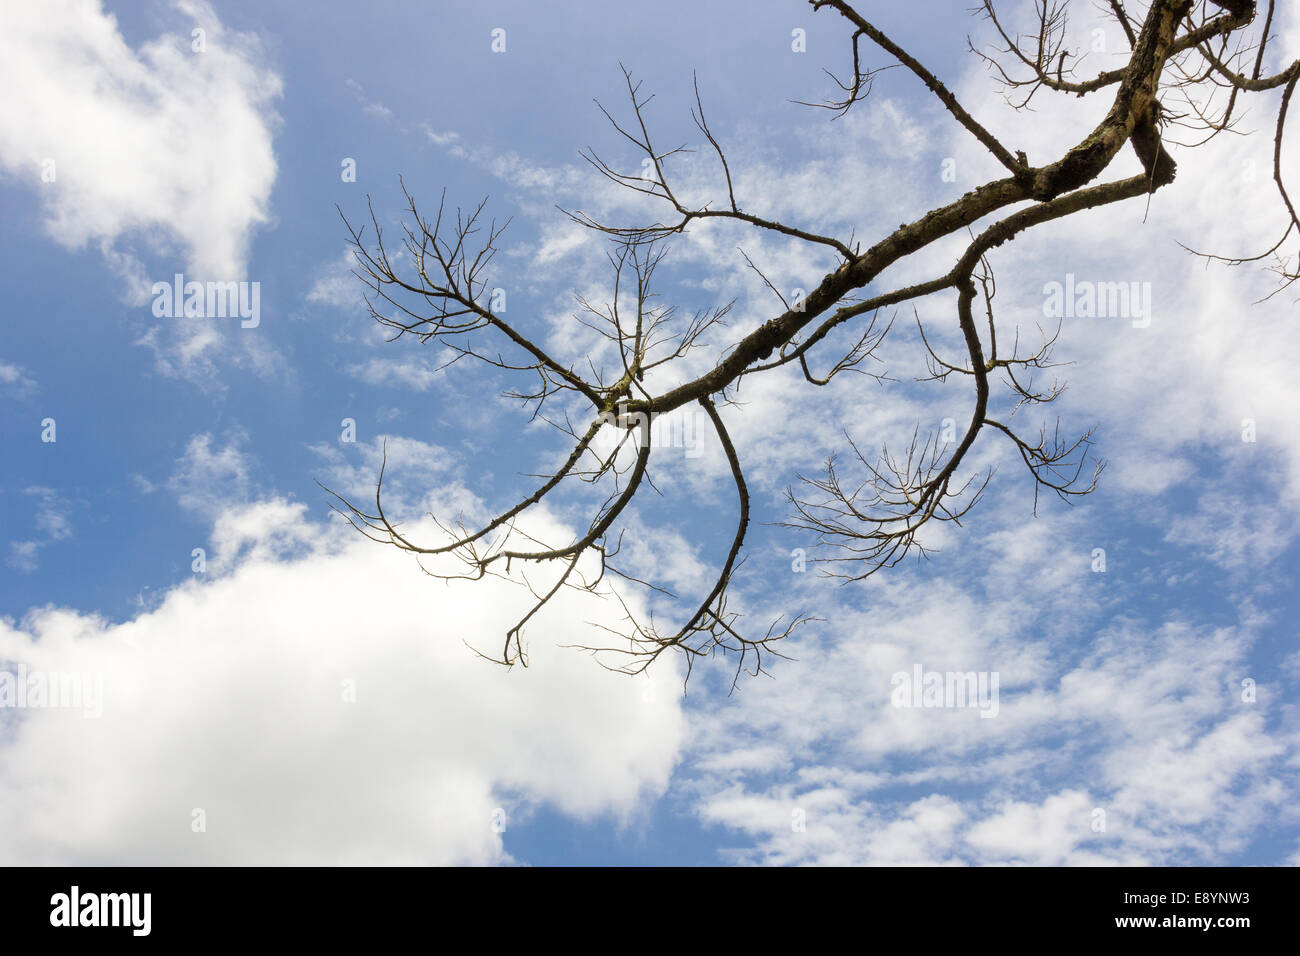 The dead branch - Stock Image